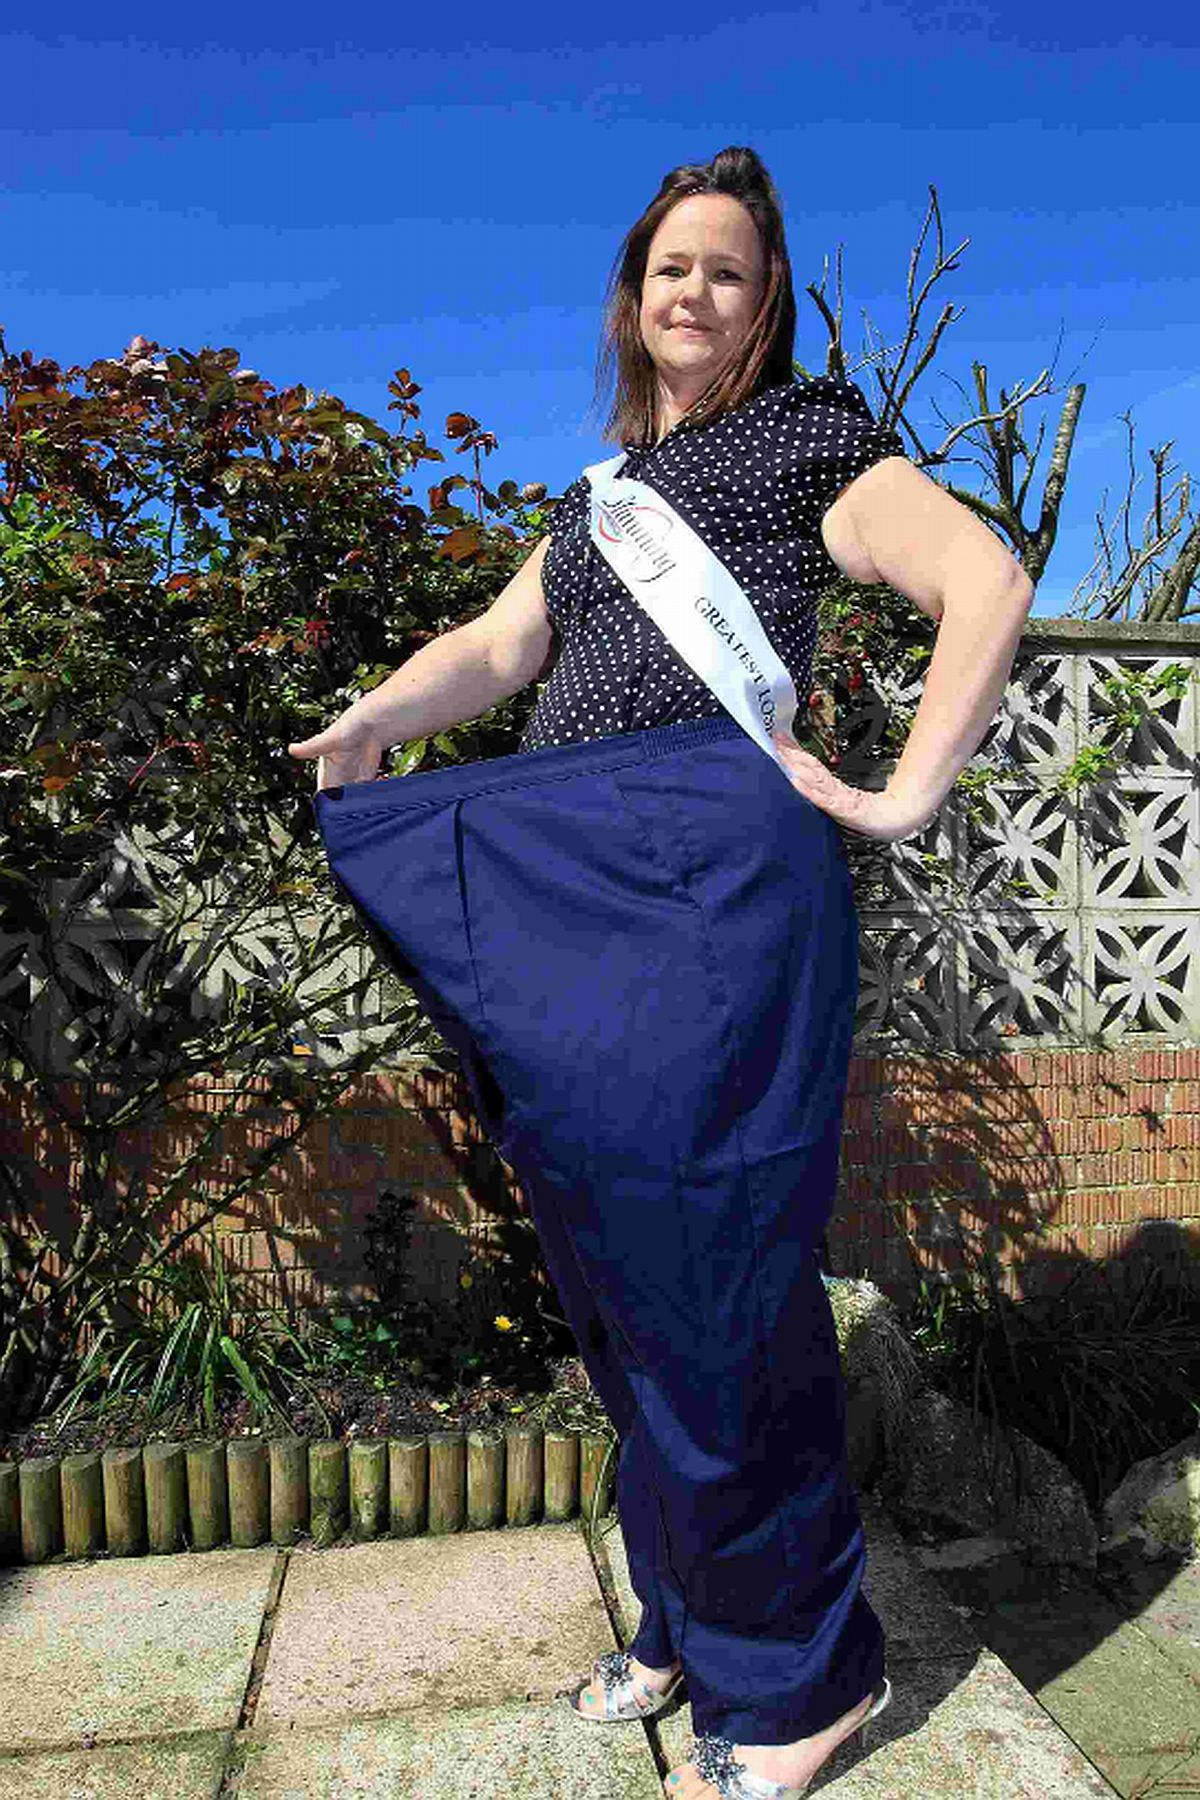 TRANSFORMED: Emma Hann after her inspirational weight loss